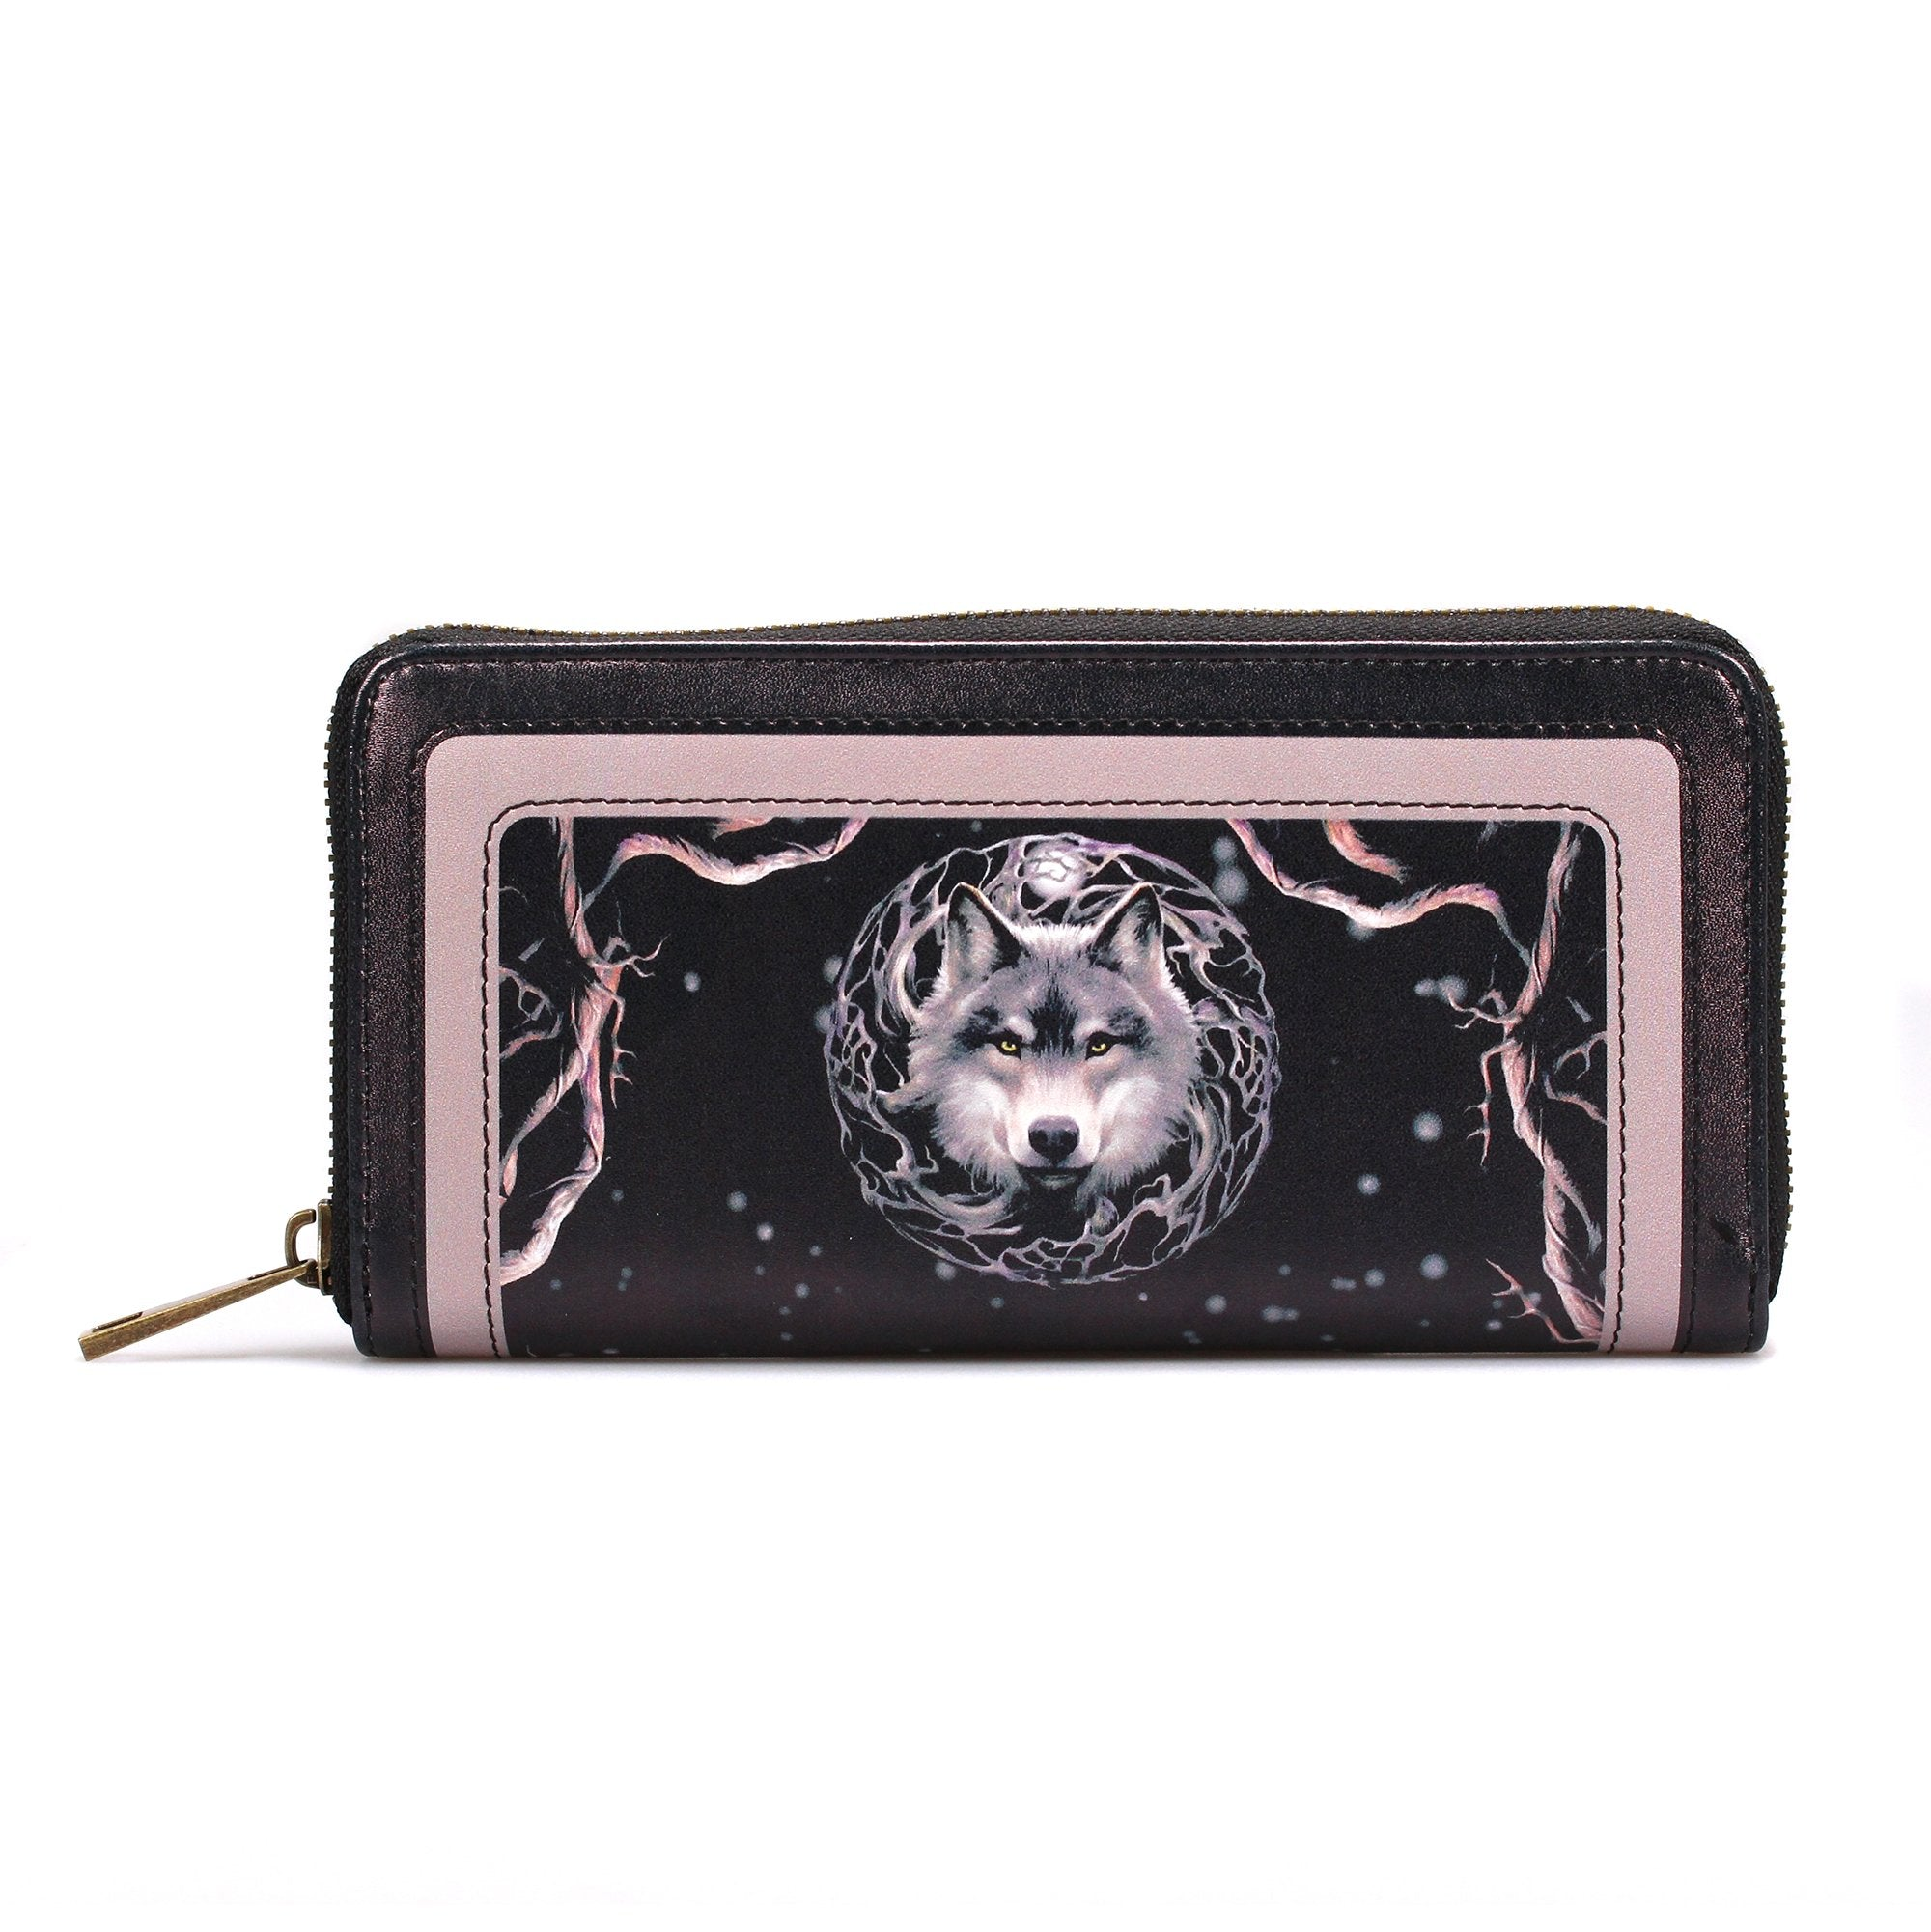 Anne Stokes Purse - Night Forest Wolf - Half Moon Bay US